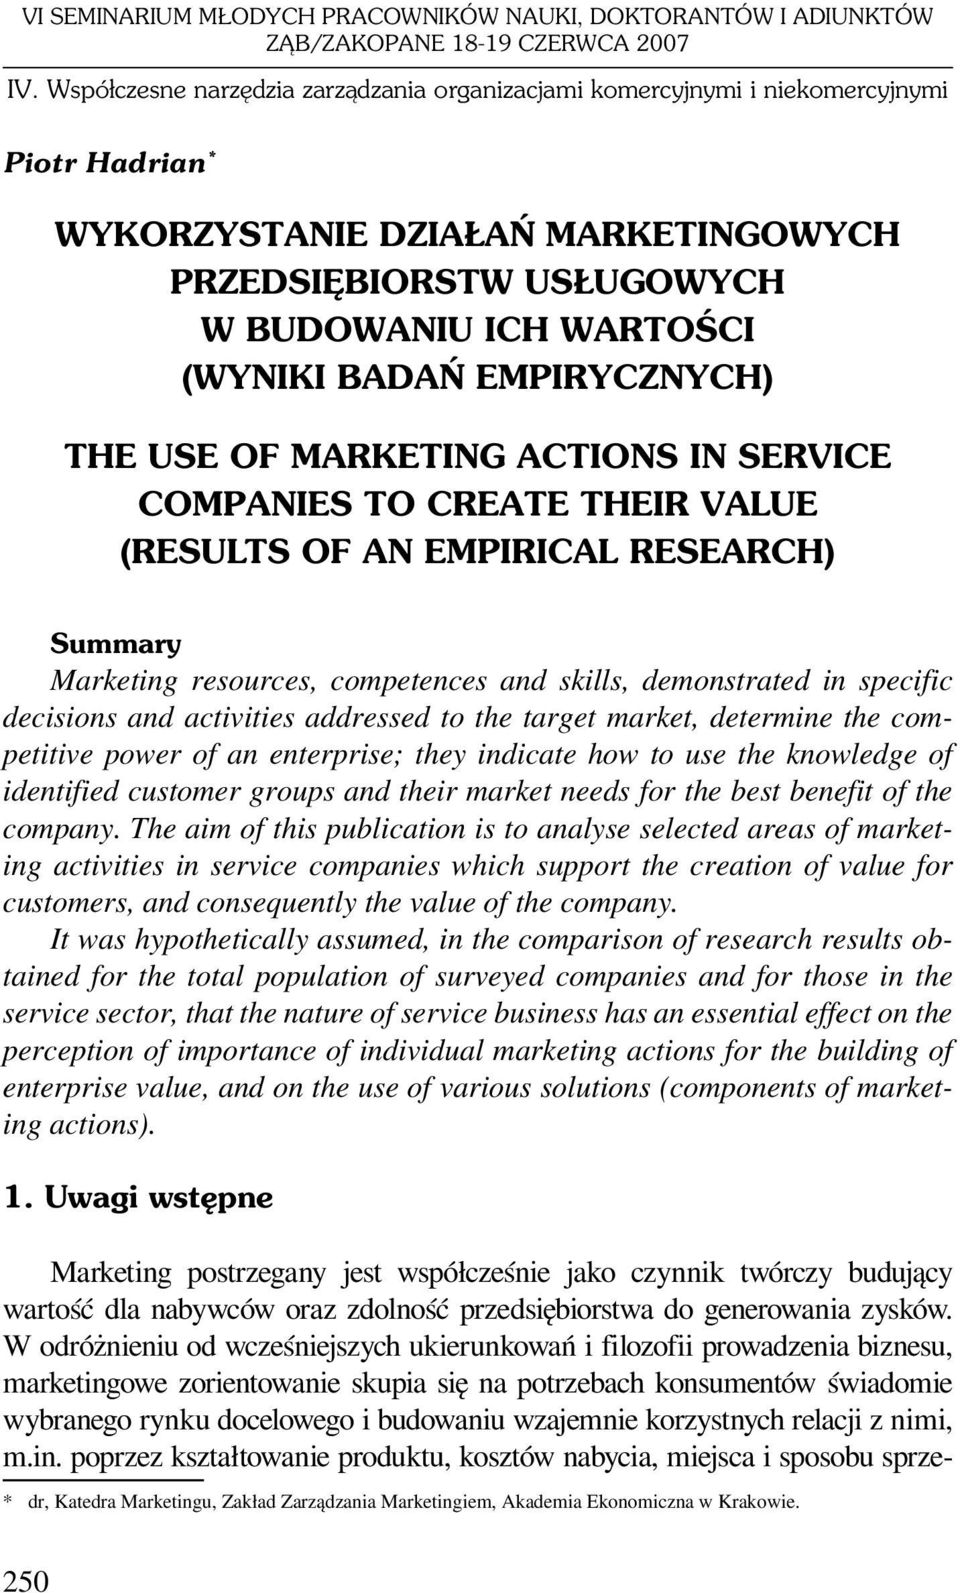 EMPIRYCZNYCH) THE USE OF MARKETING ACTIONS IN SERVICE COMPANIES TO CREATE THEIR VALUE (RESULTS OF AN EMPIRICAL RESEARCH) Summary Marketing resources, competences and skills, demonstrated in specific